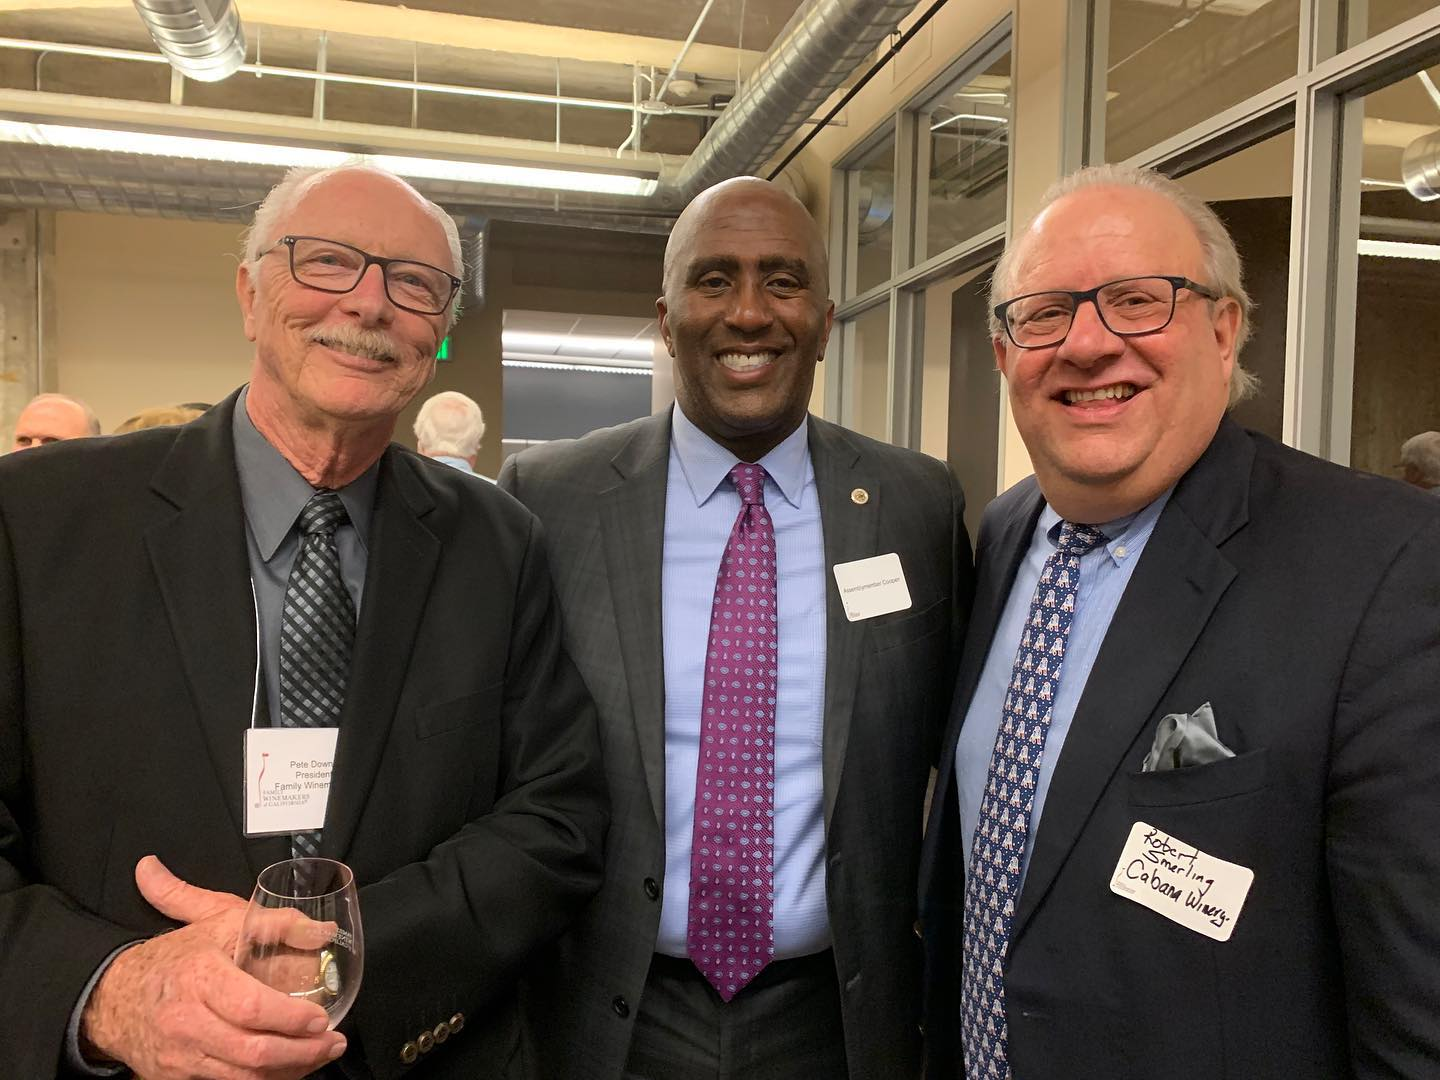 It's always great to see wine makers from AD 9 at the annual Family Winemakers of California reception.  Here I am with Pete Downs of Family Winemakers of CA and Robert Smerling of Cabana Winery.